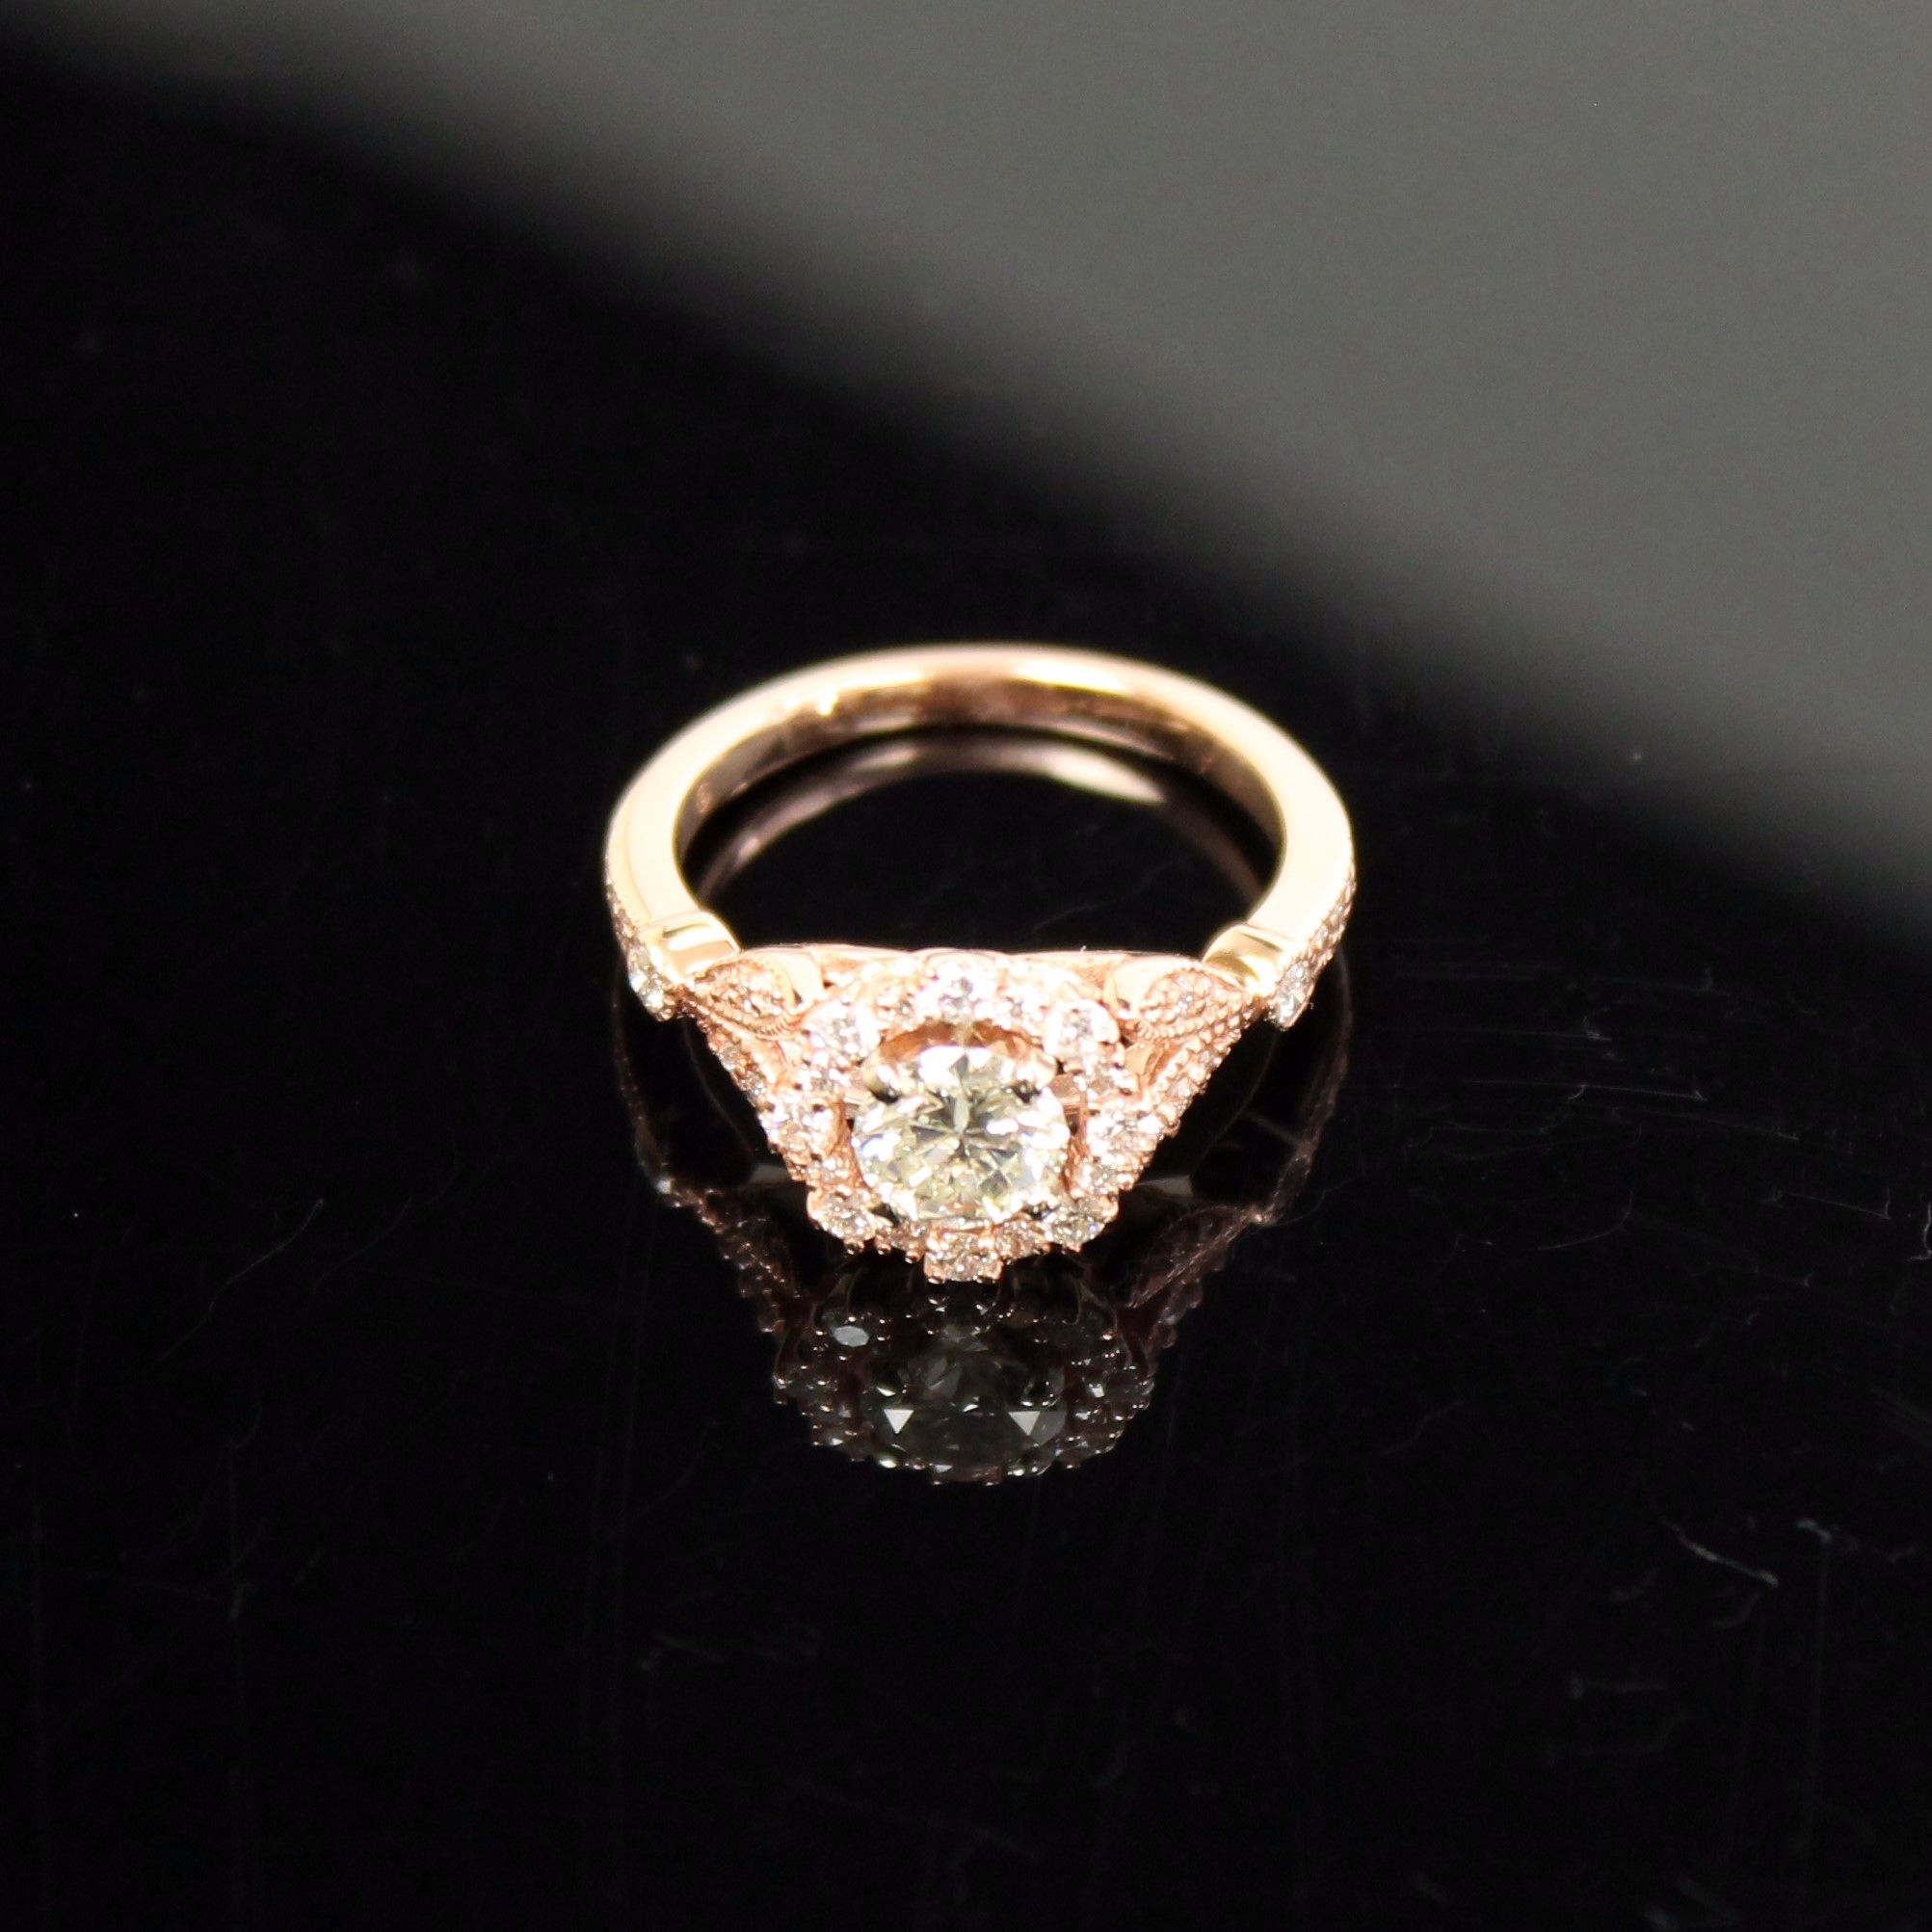 14K ROSE GOLD ROUND BRILLIANT CUT .70 CT REAL DIAMOND RING - 1.12 TCW W/ HALO